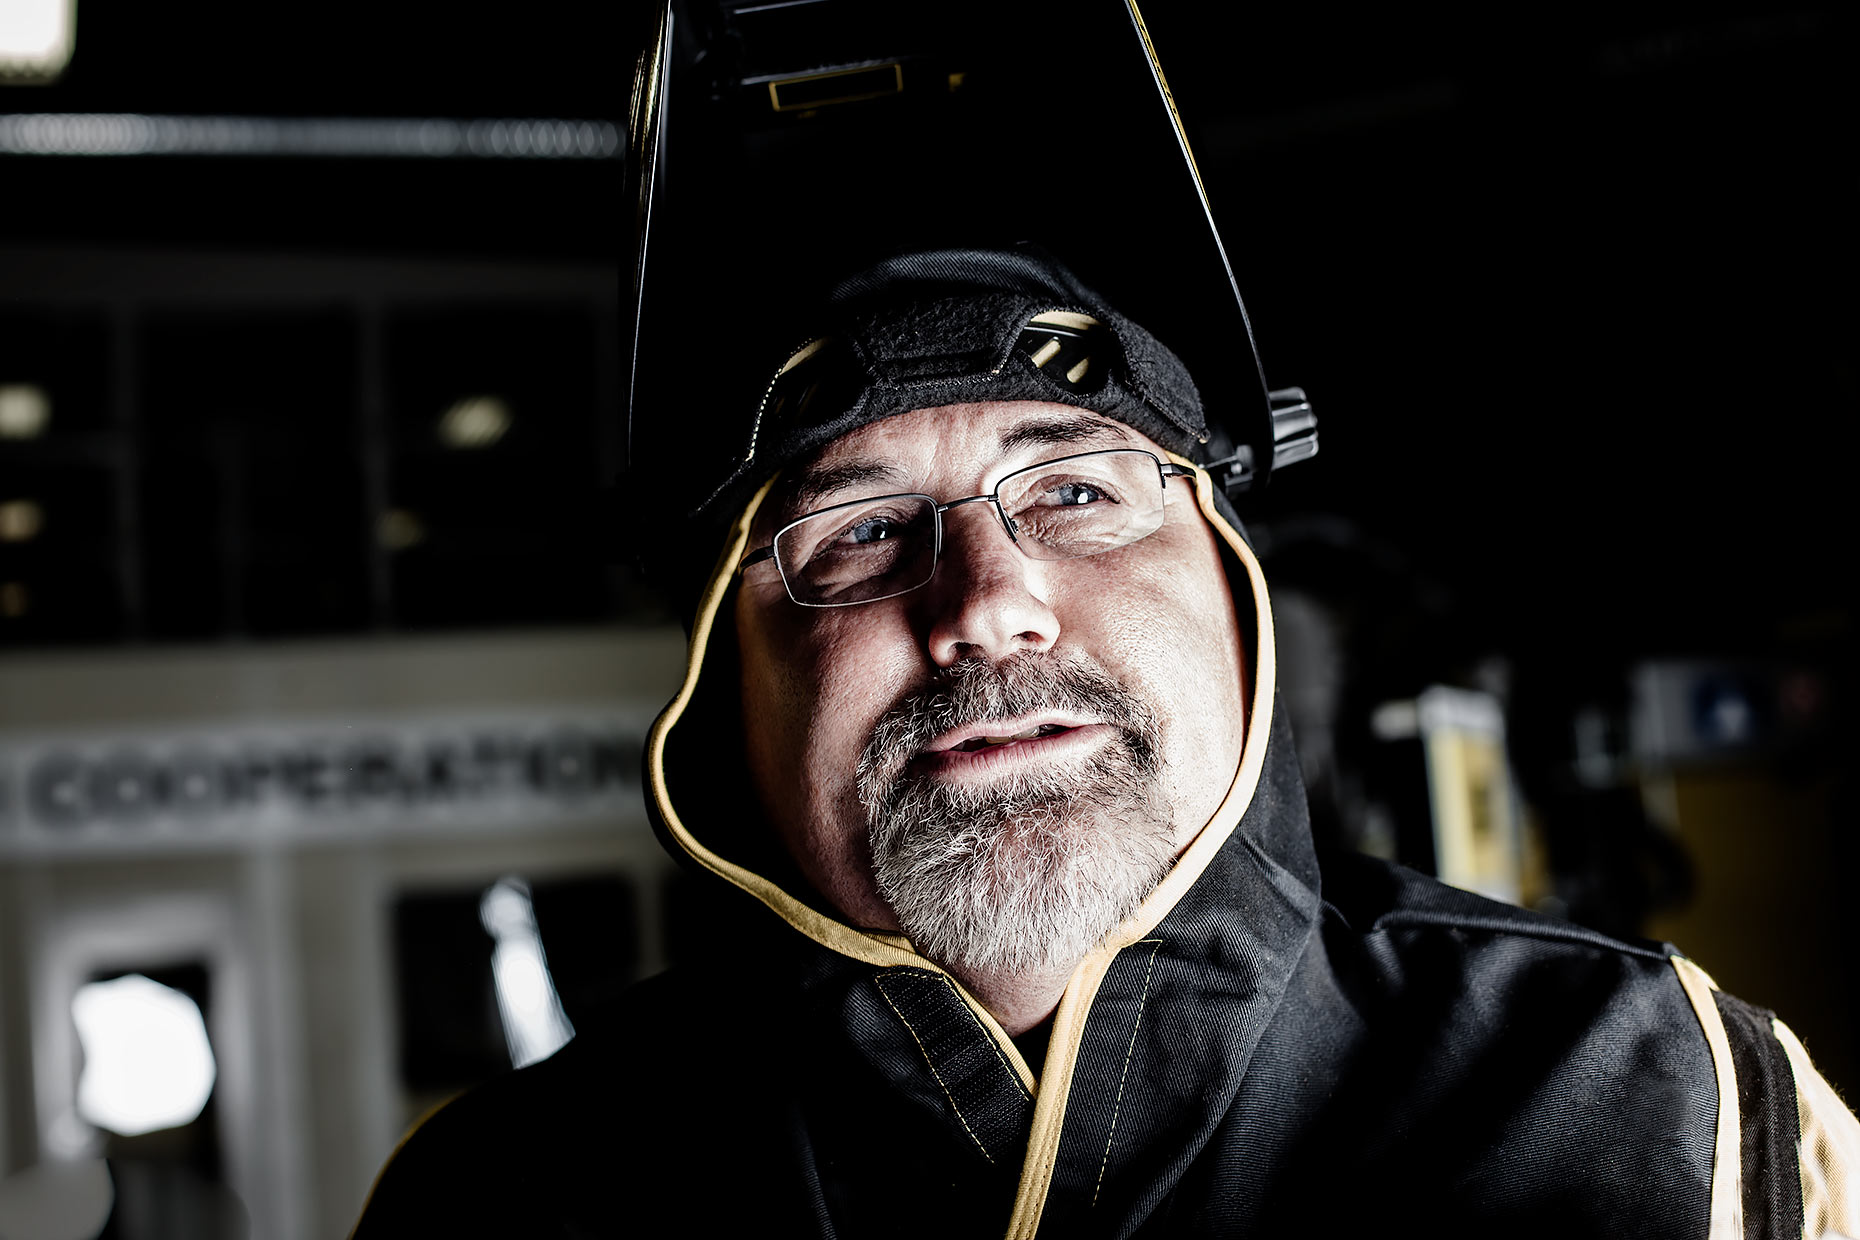 esab welder safety  | Scott Gable is an advertising and editorial photographer providing photography and video to corporate, industrial, medical and bio-science clients worldwide.